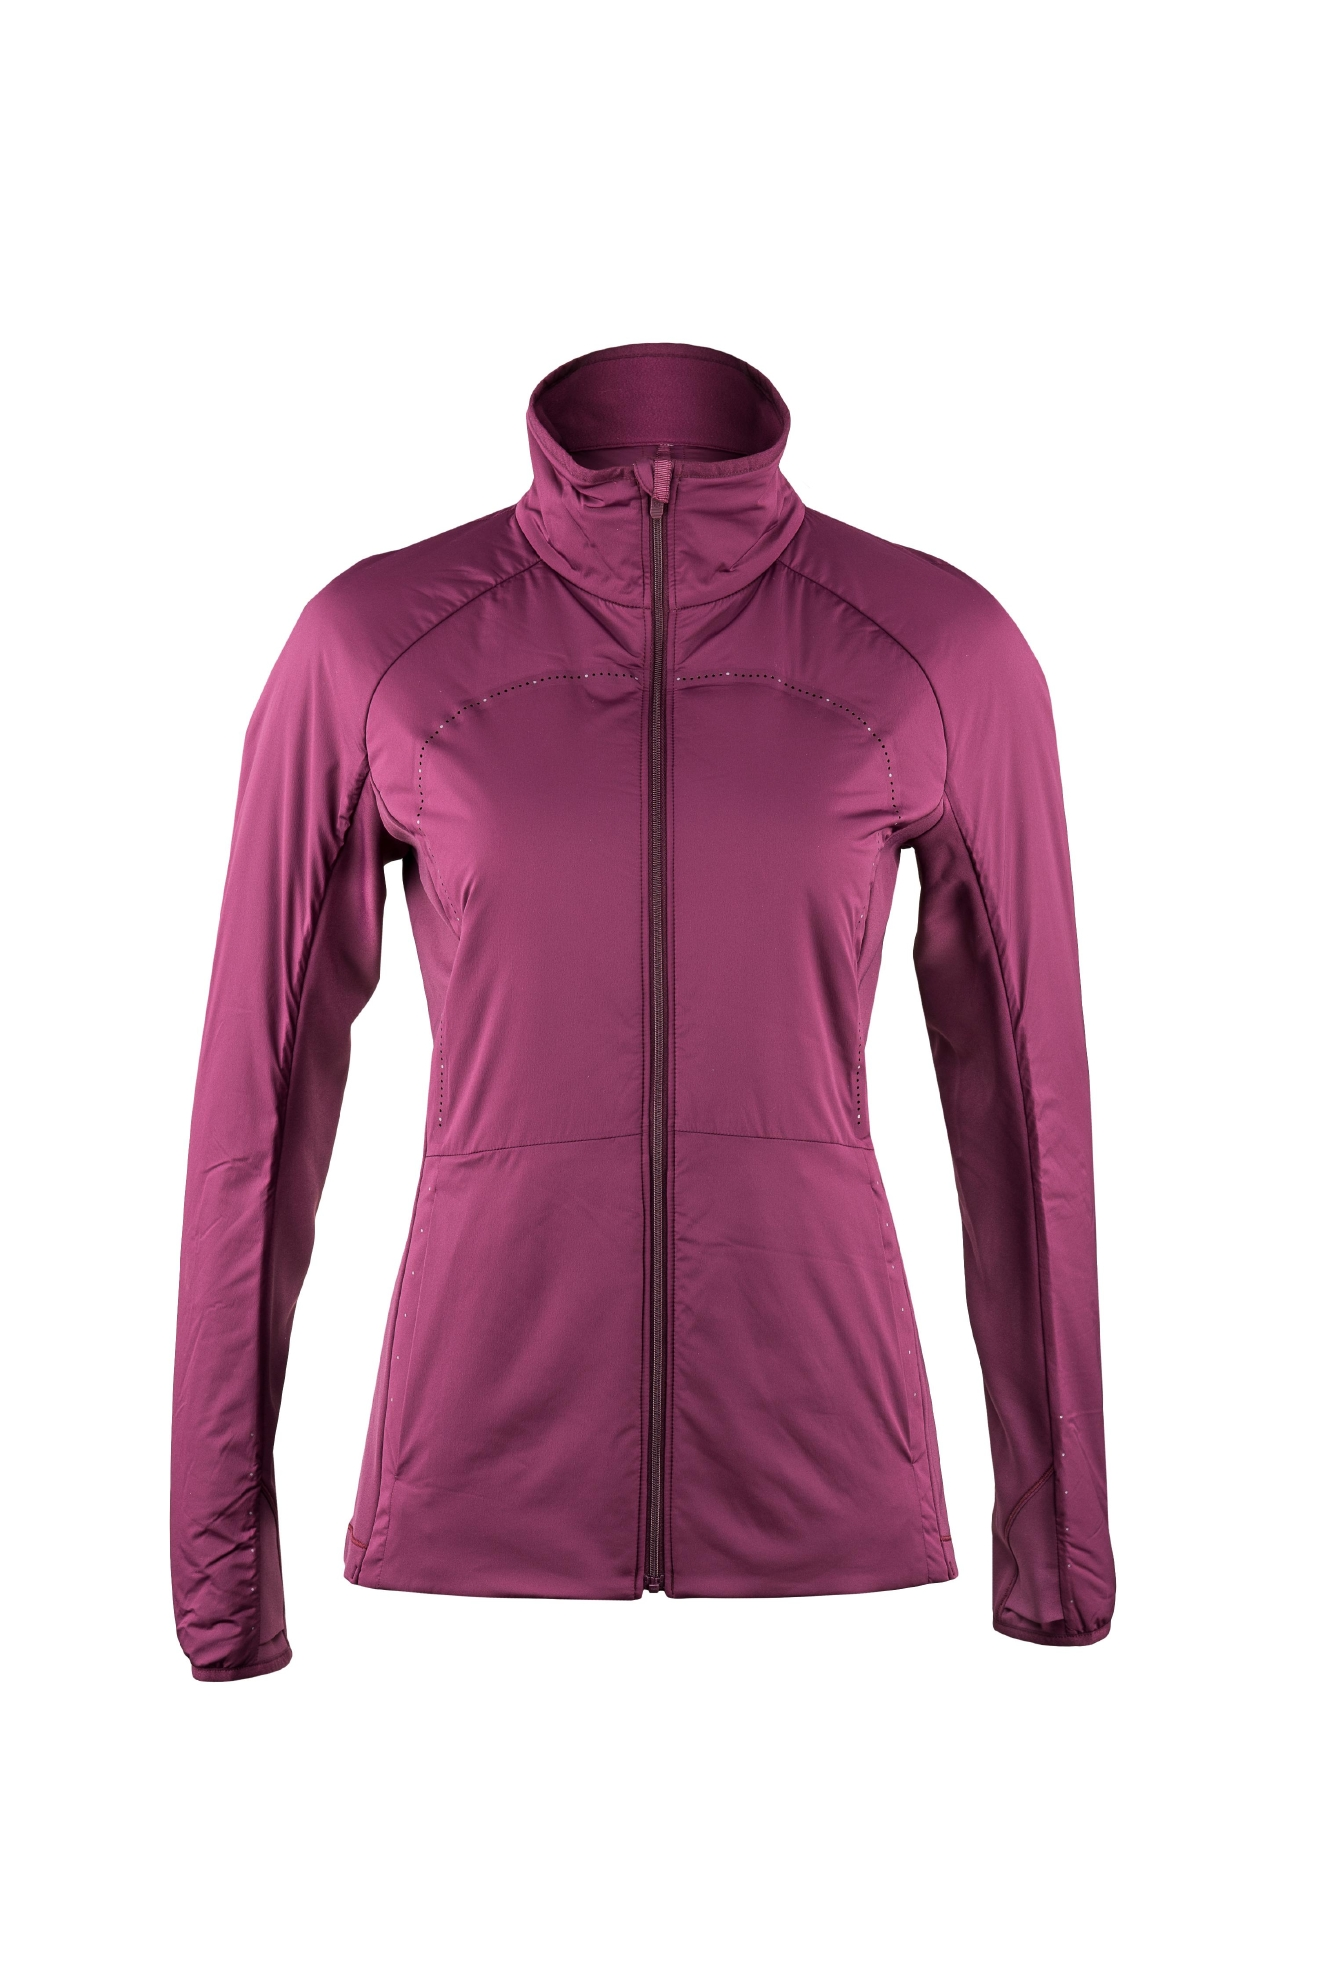 Lululemon Run For Cold Jacket, Designed with strategically weighted Primaloft® Active insulation, this jacket aims to keep you warm where it counts. Synthetic insulation retains warmth when it gets wet and the low-profile loft allows you to stay flexible and nimble. (Photo: Lululemon)